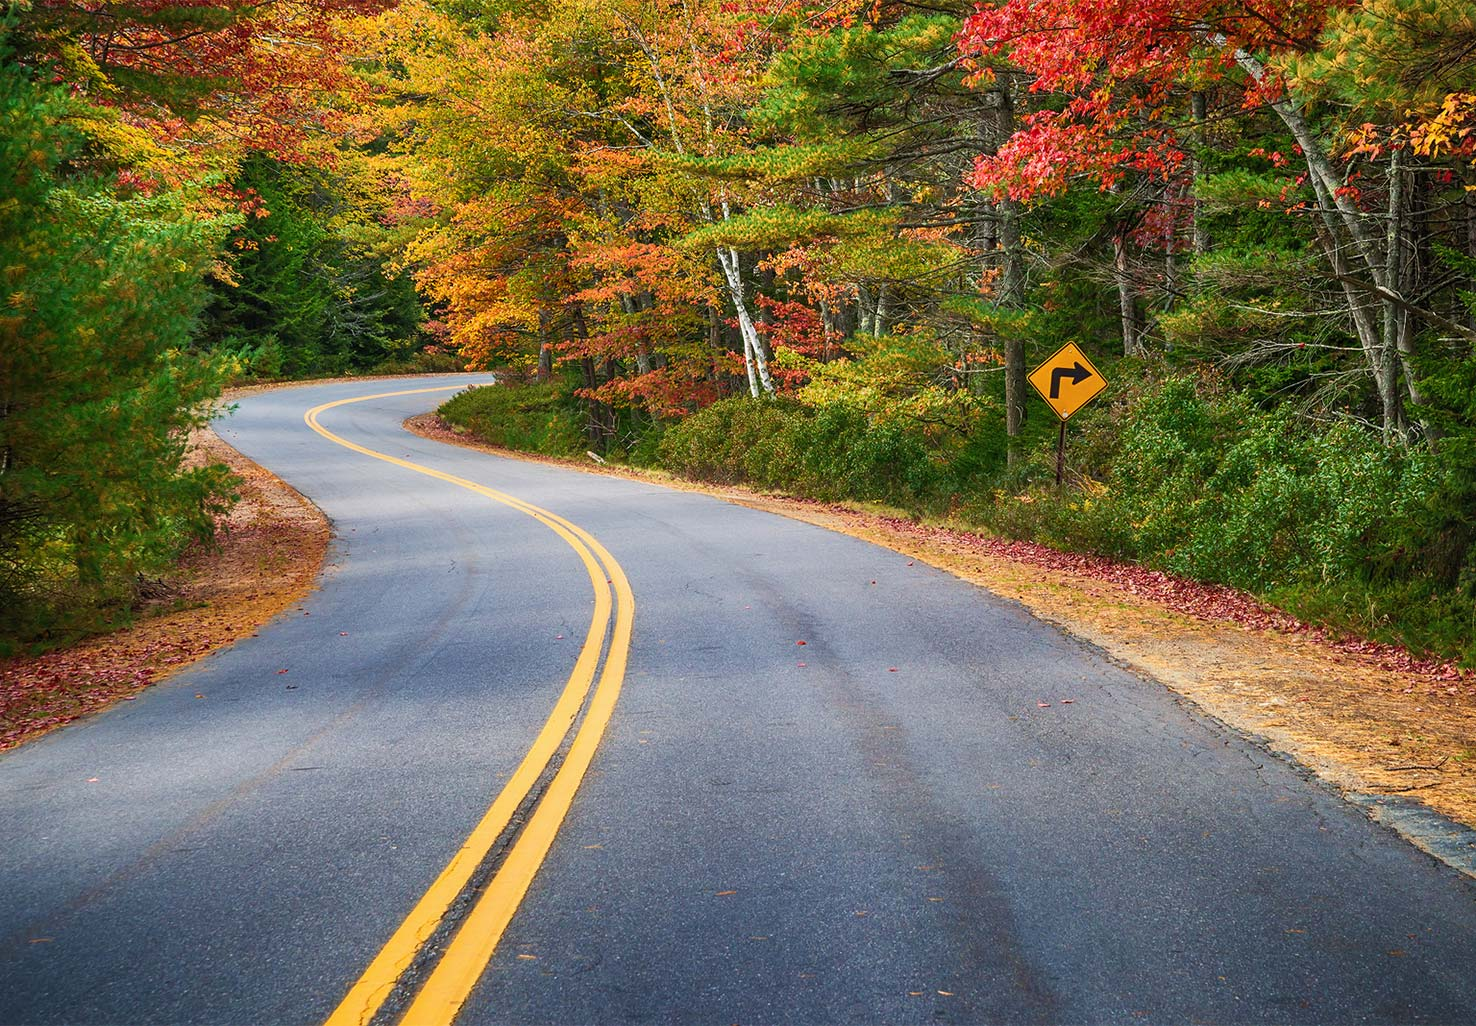 A scenic drive through autumn colors